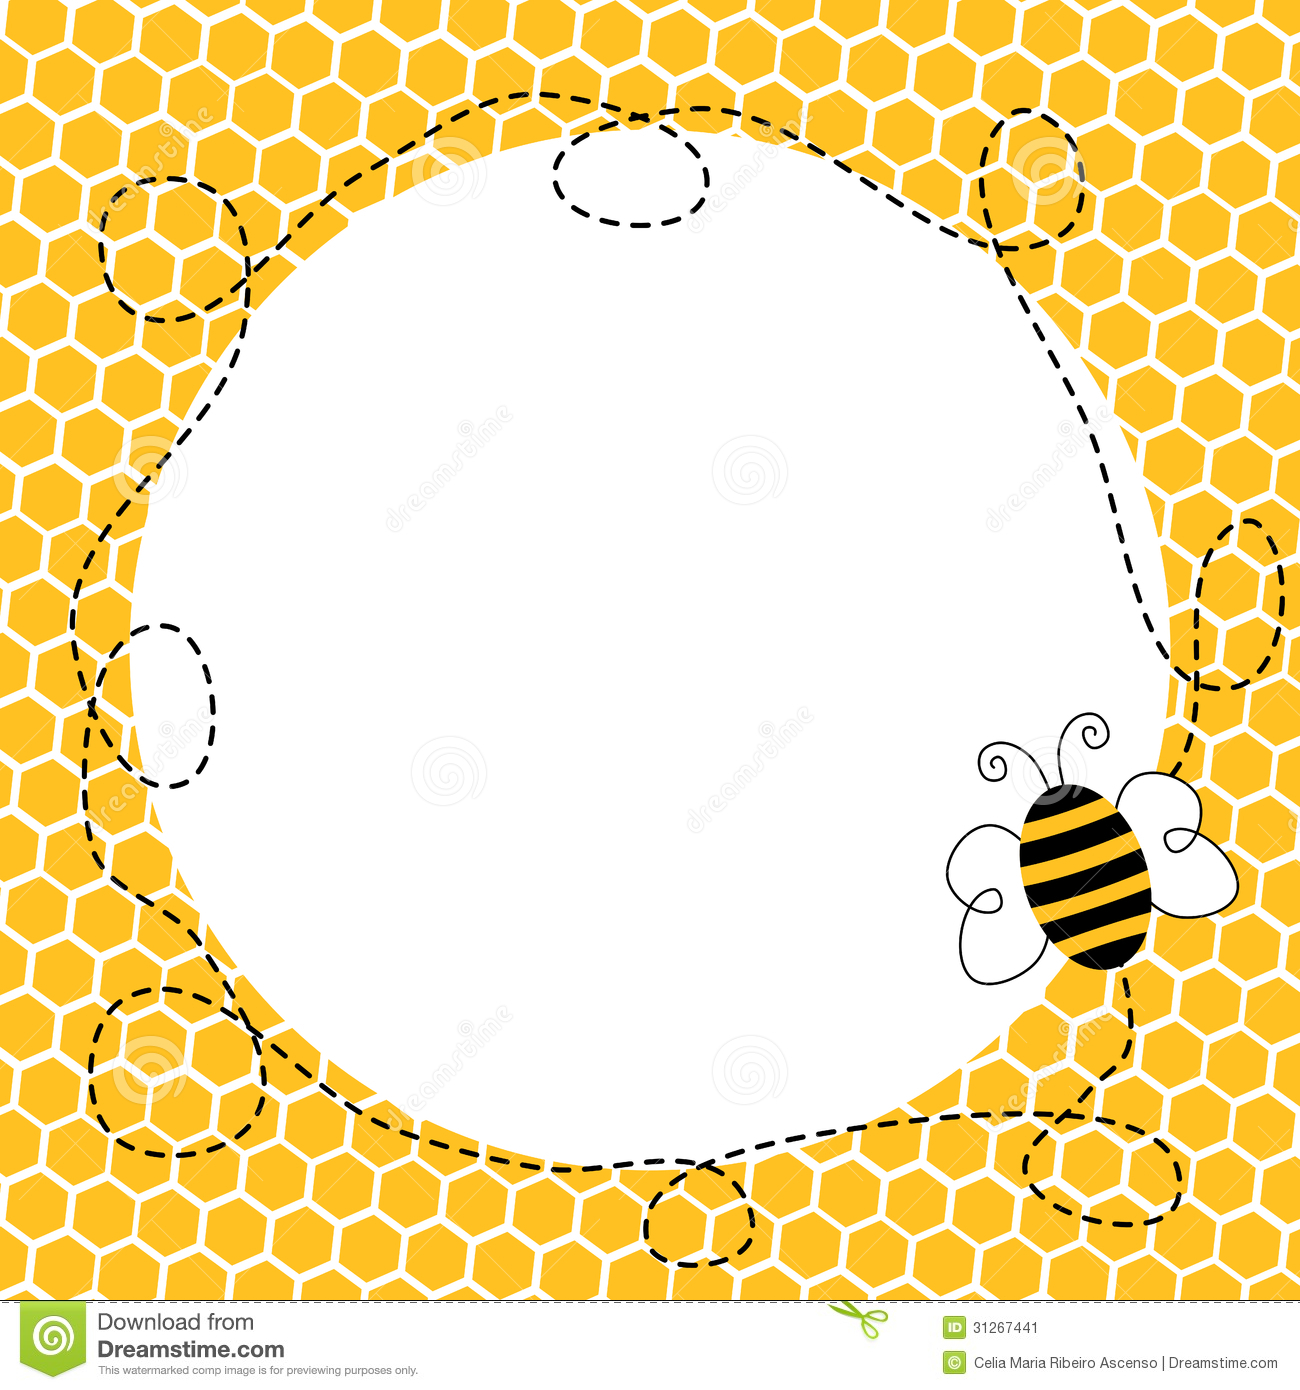 Flying Bee in a Honeycomb Frame